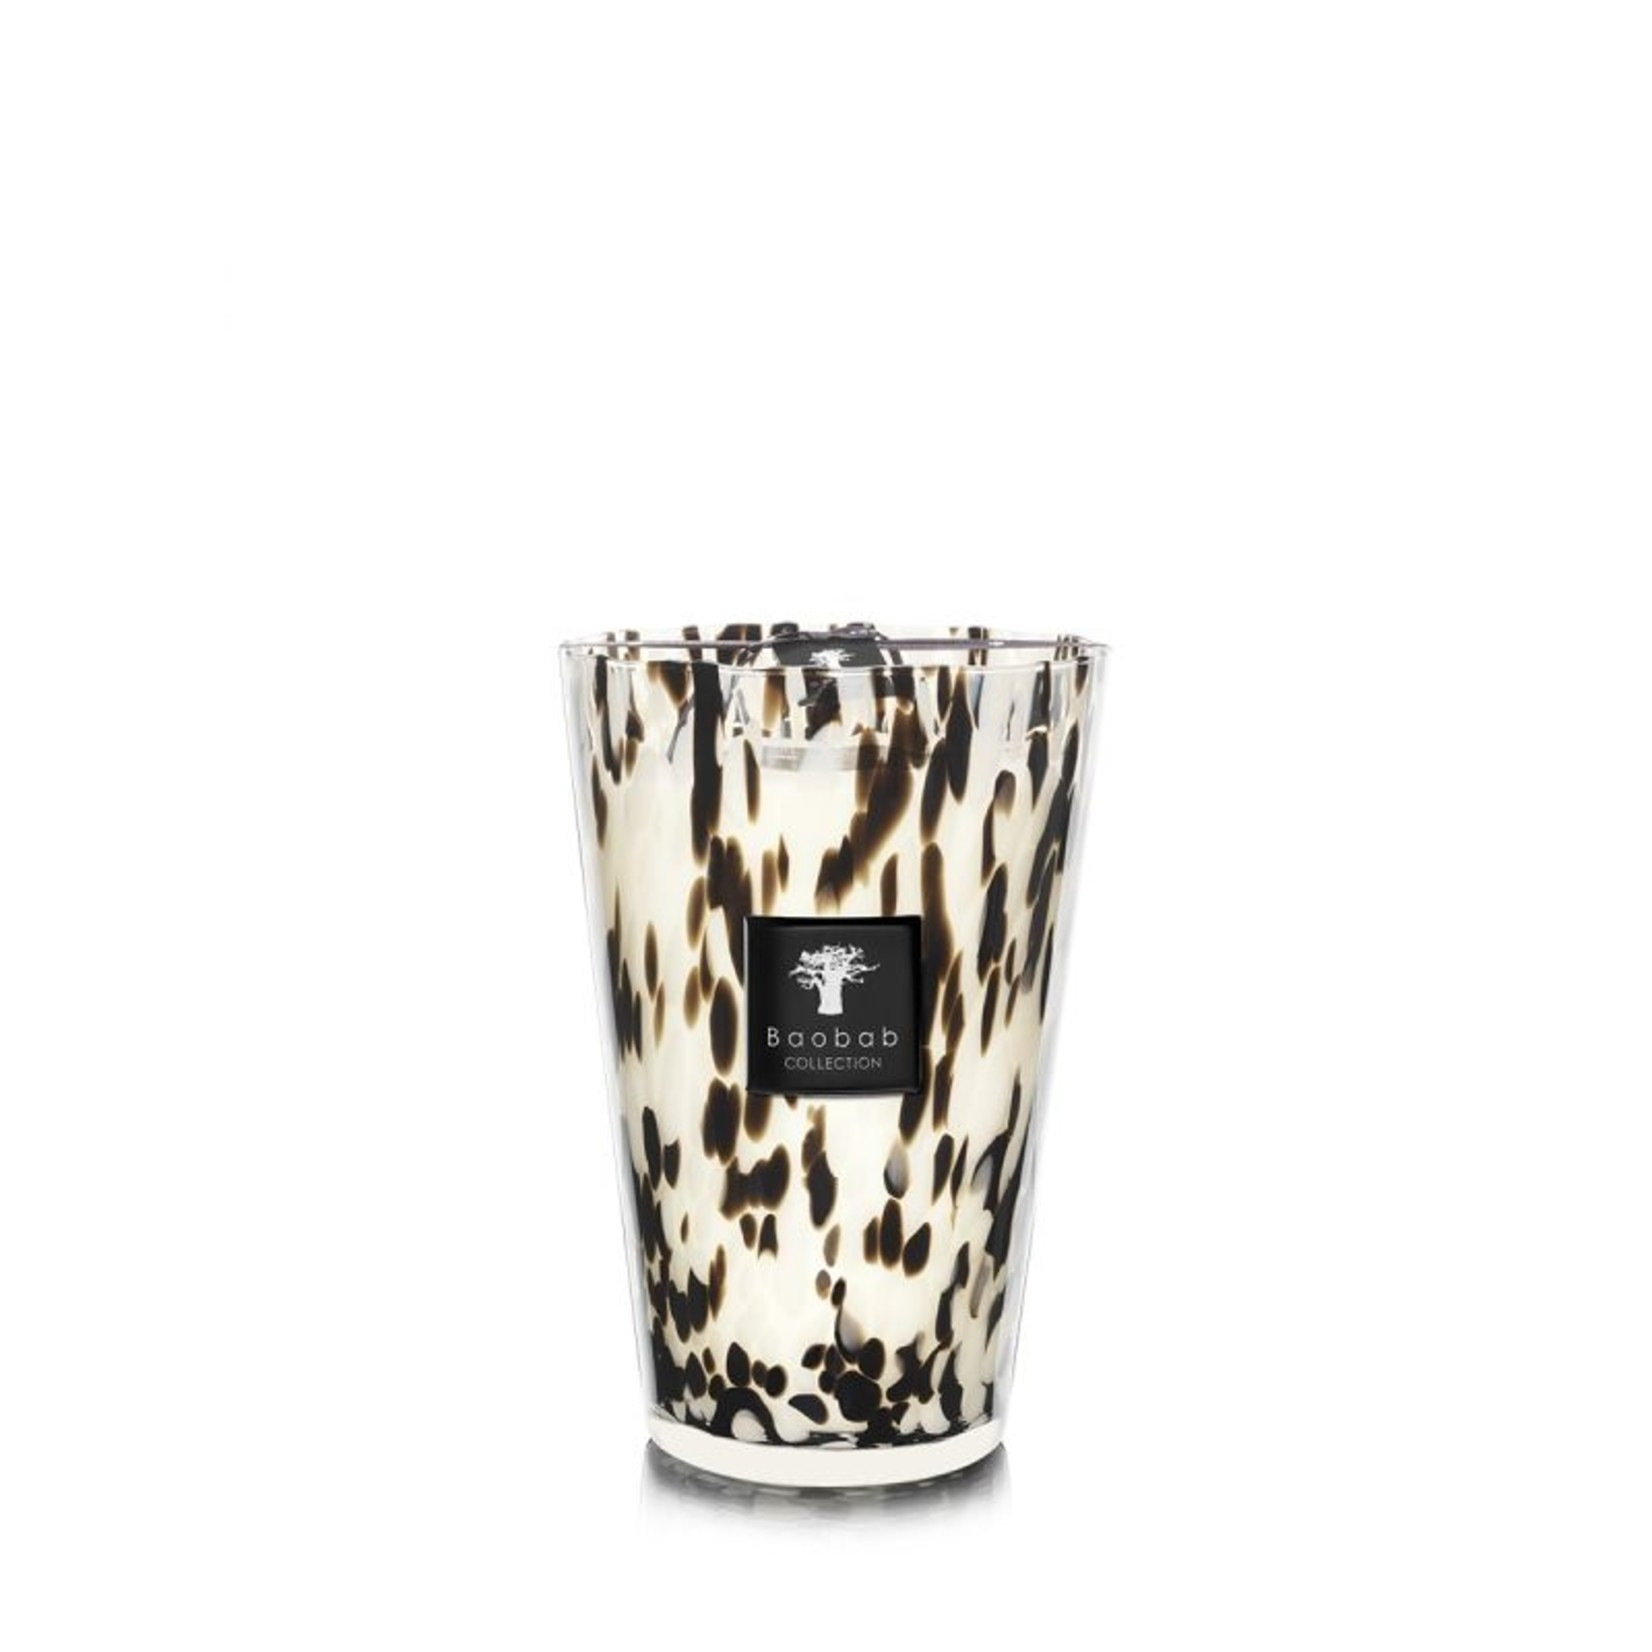 Baobab Collection Black Pearls - Max 35